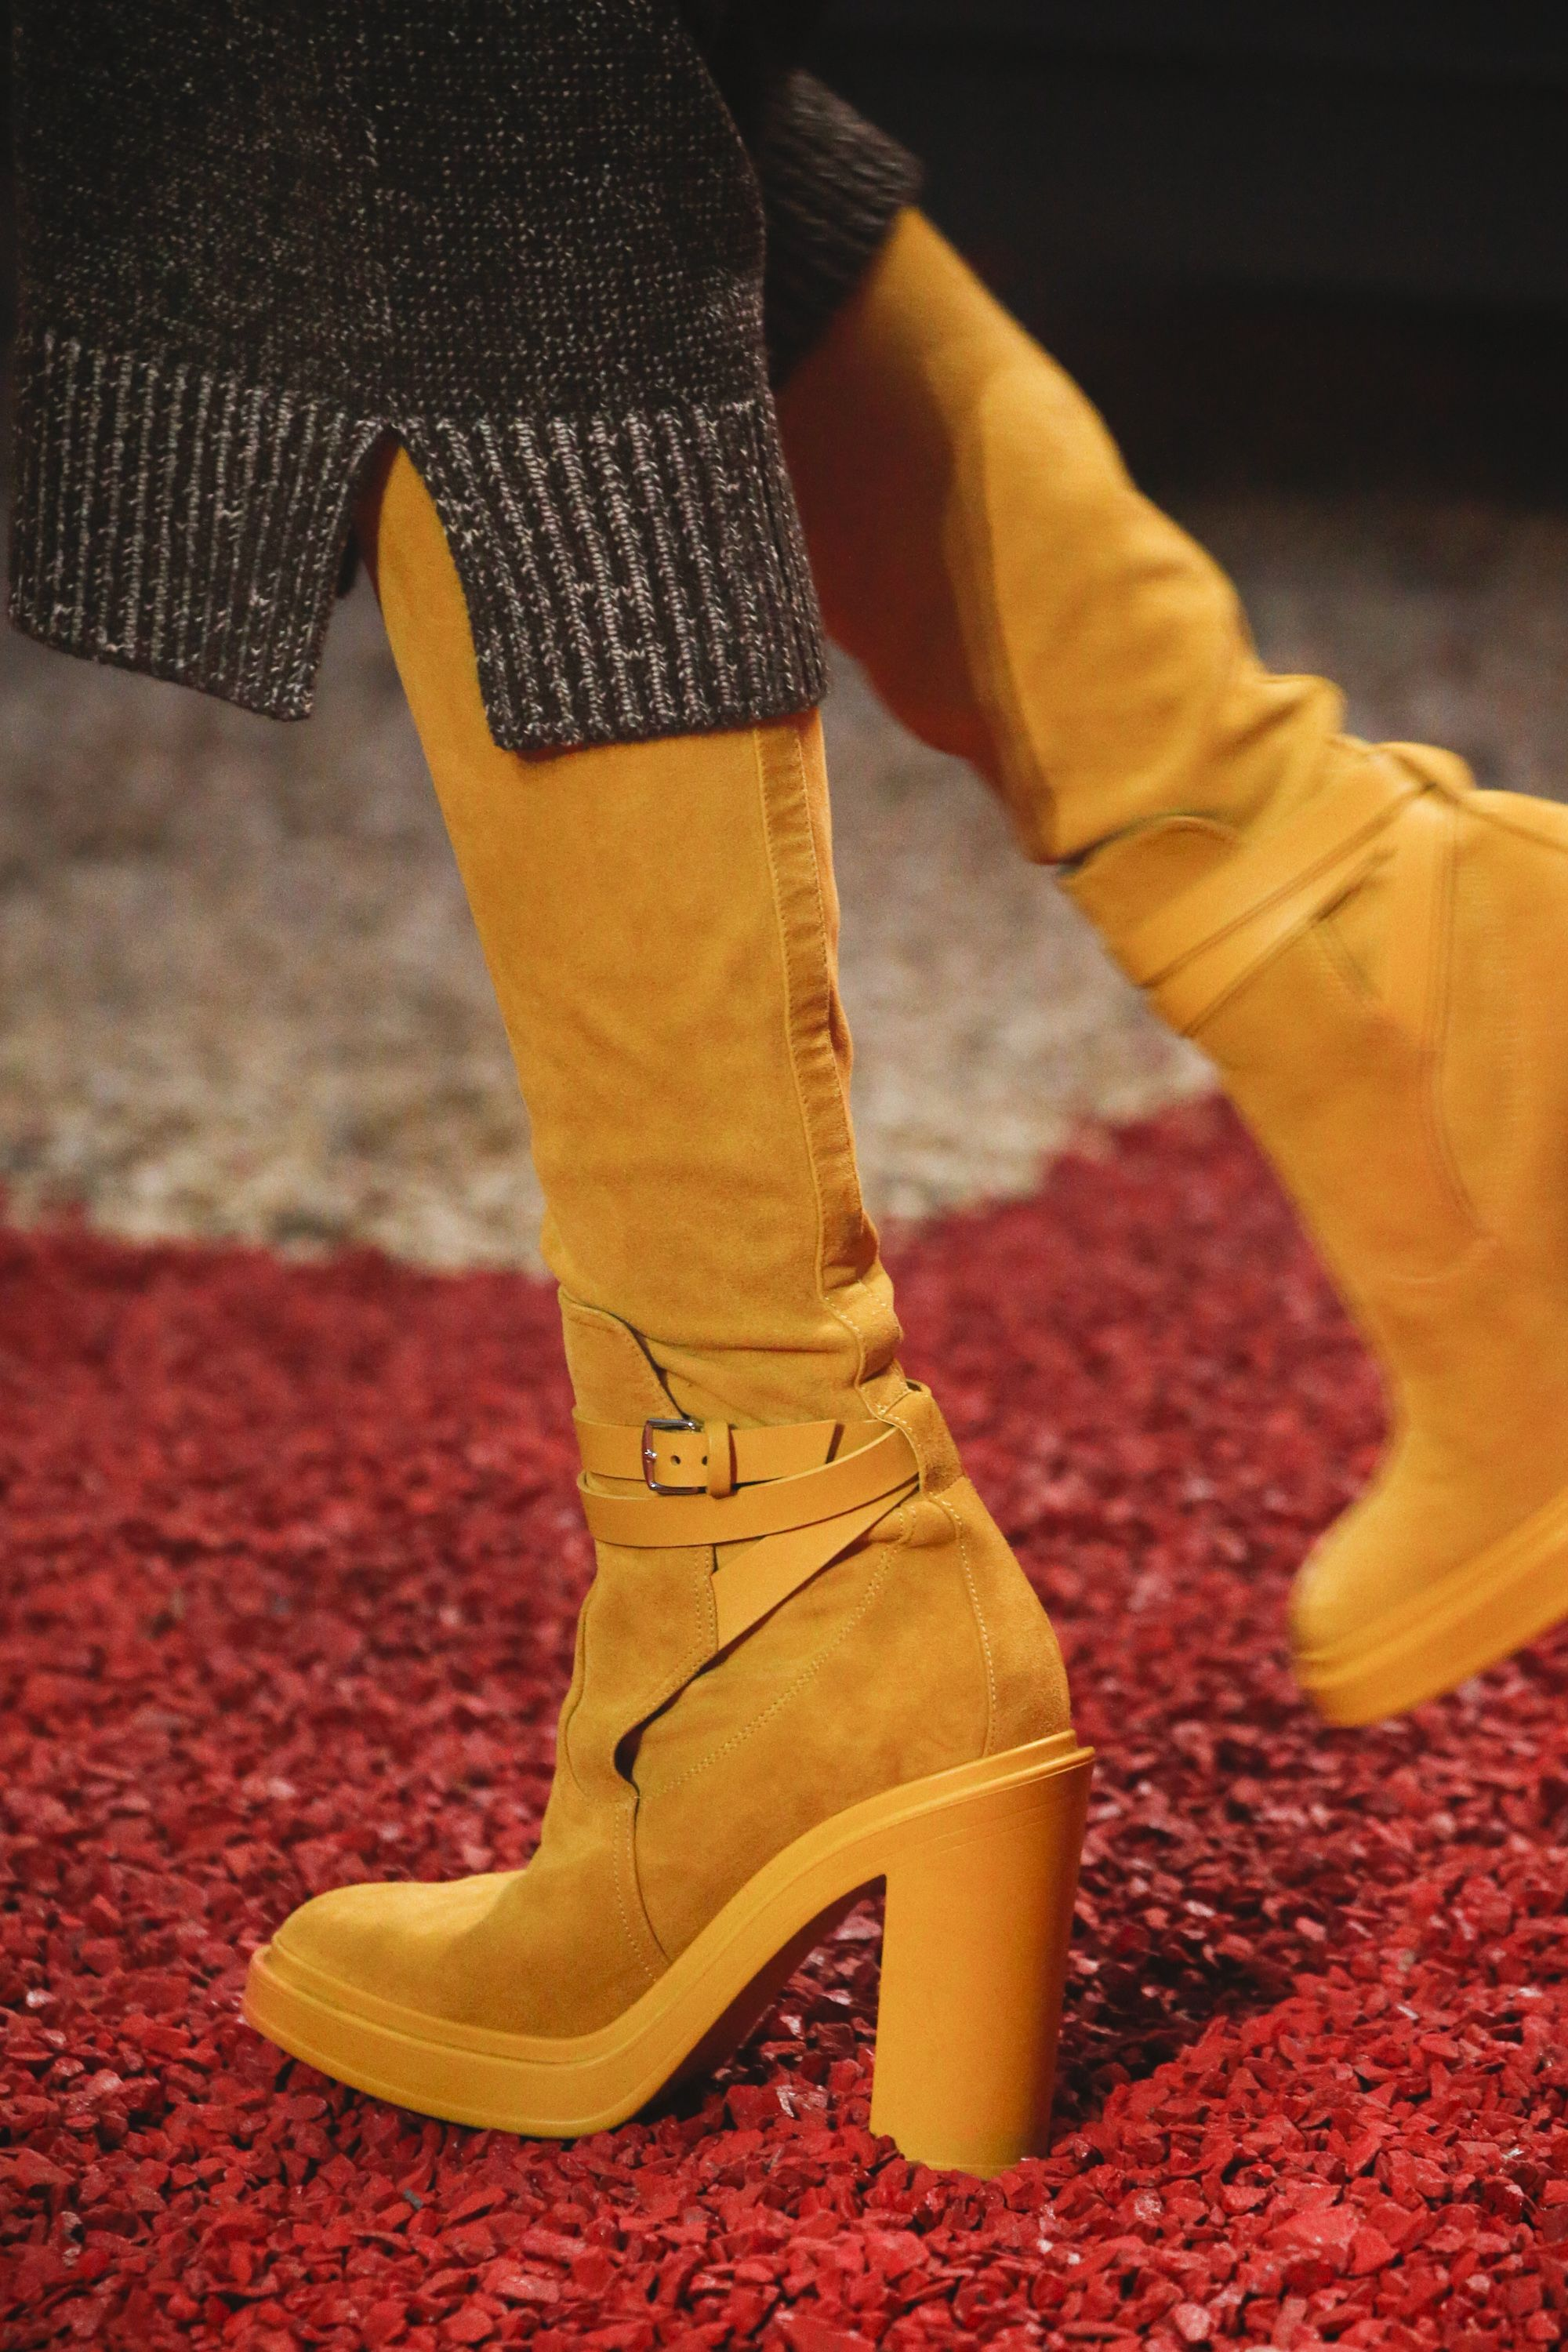 Pin on BOOTIES FW 18/19